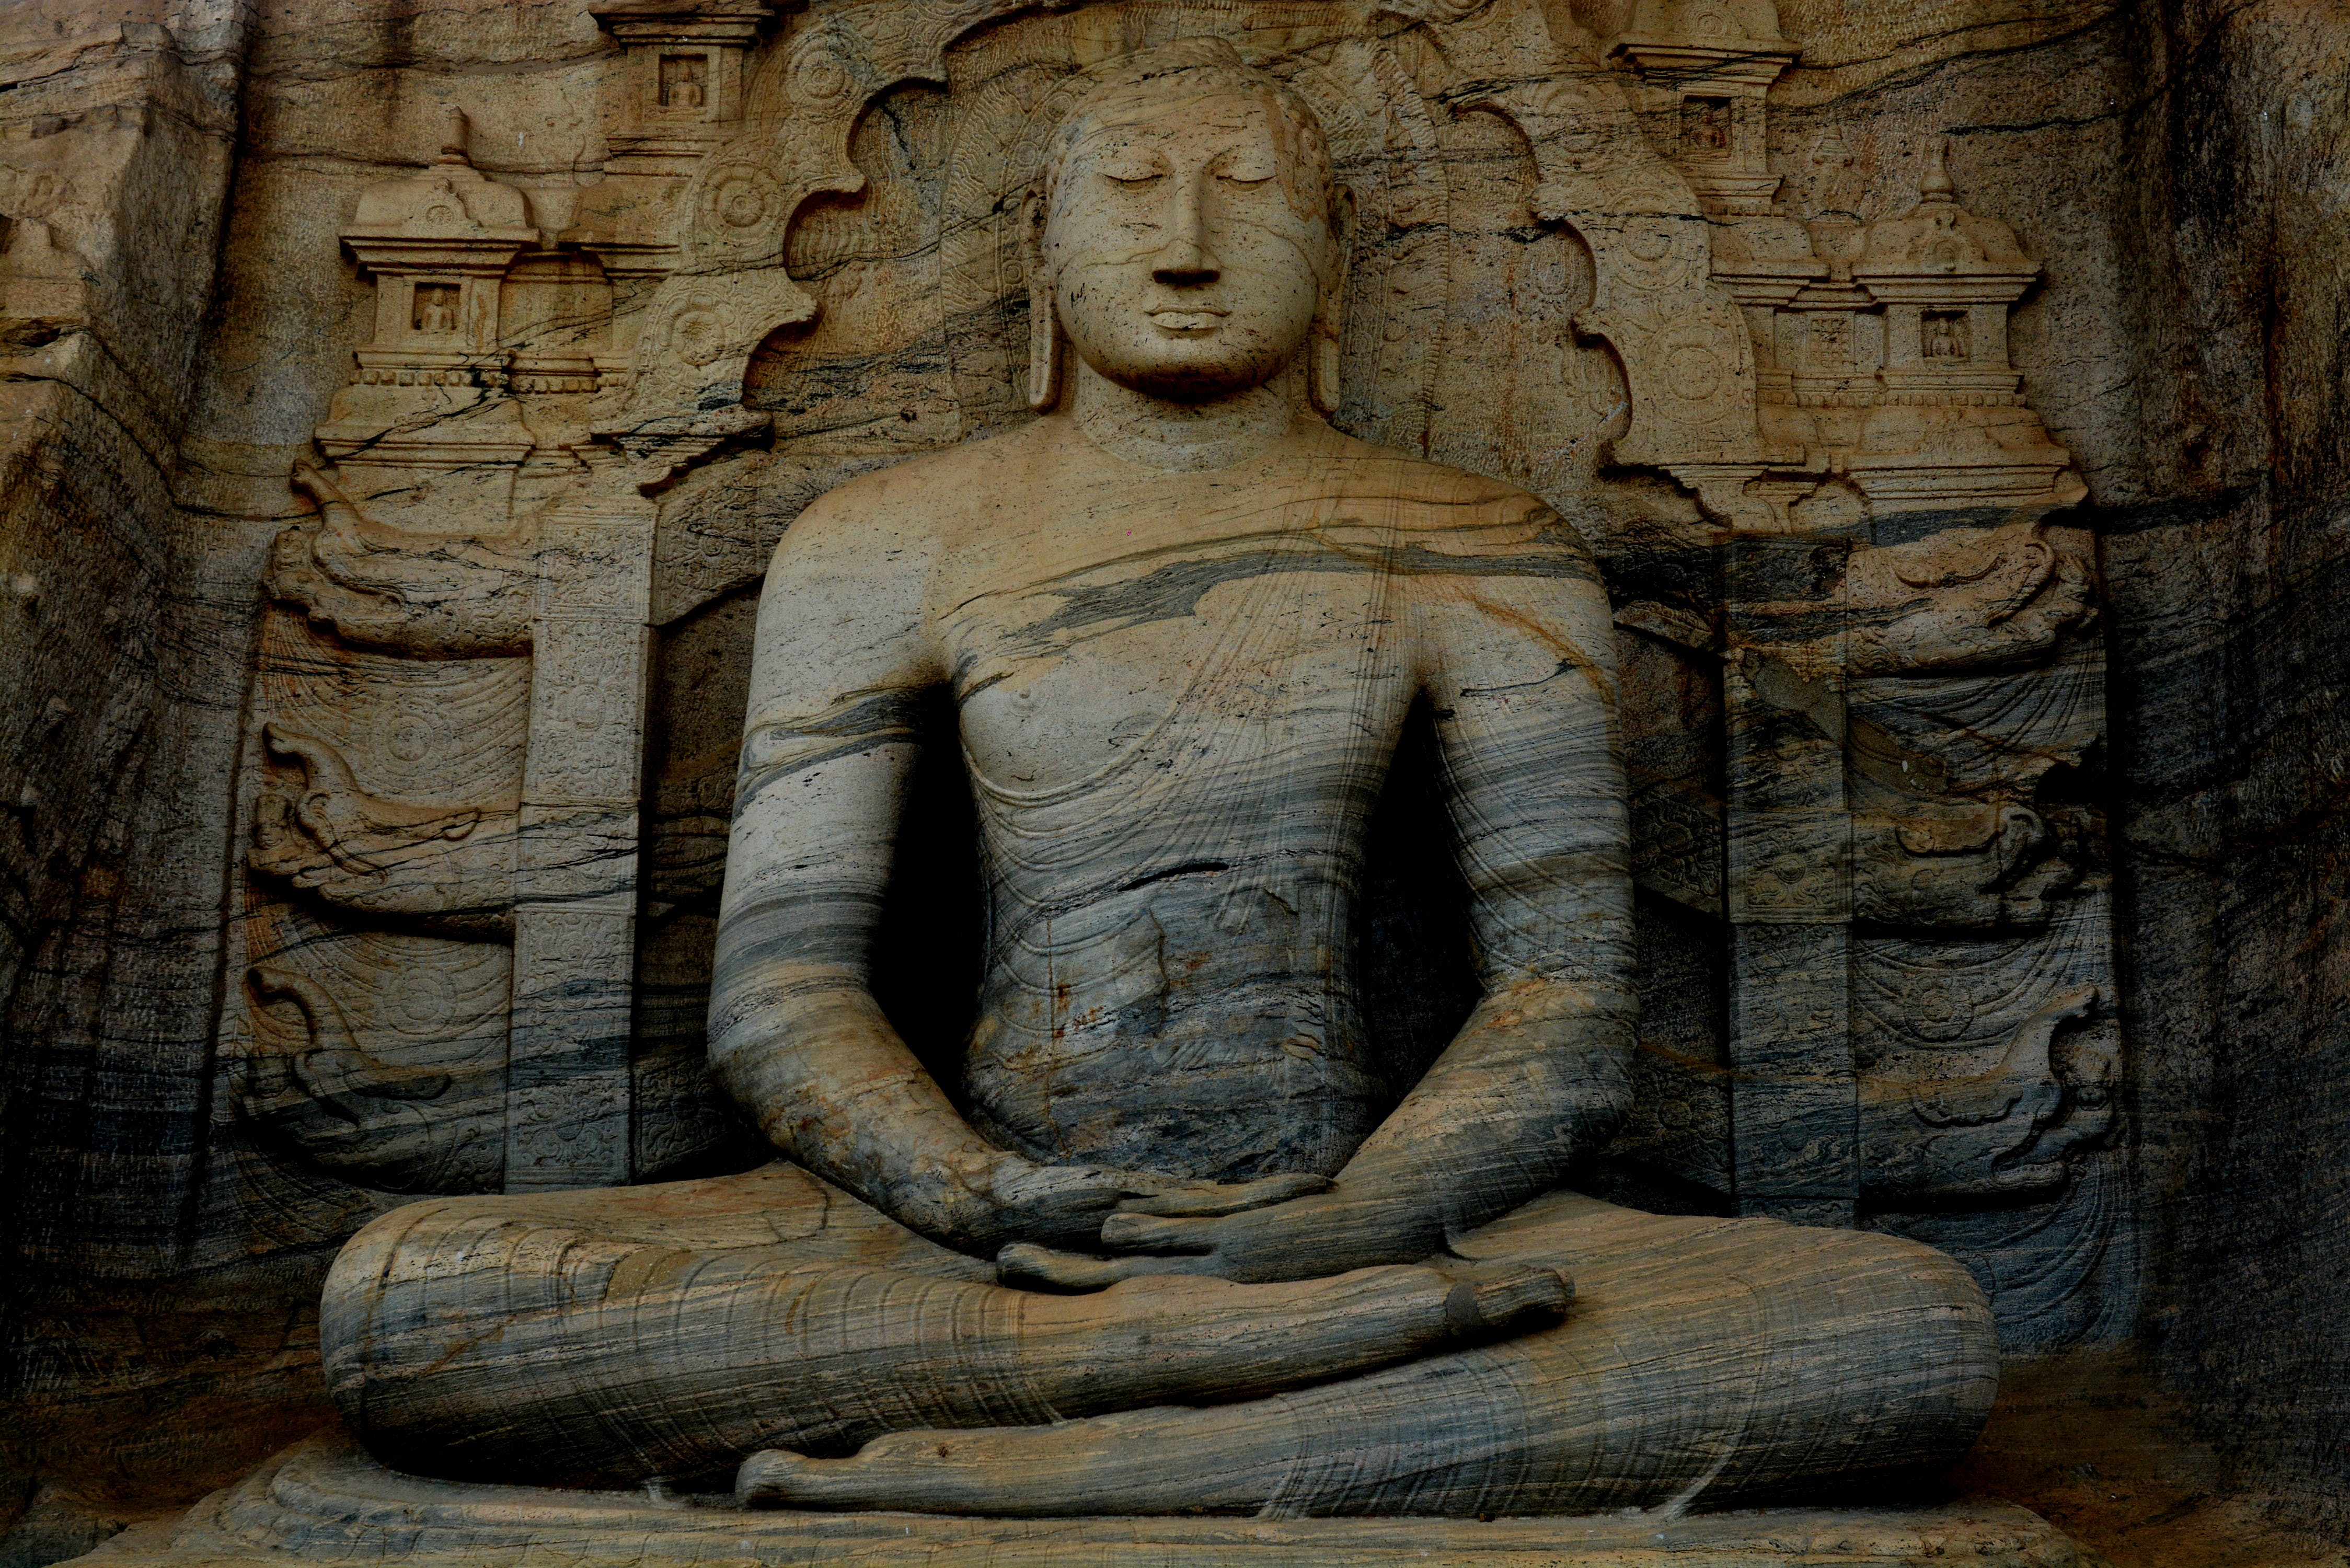 Photograph of a Meditating Buddha Statue